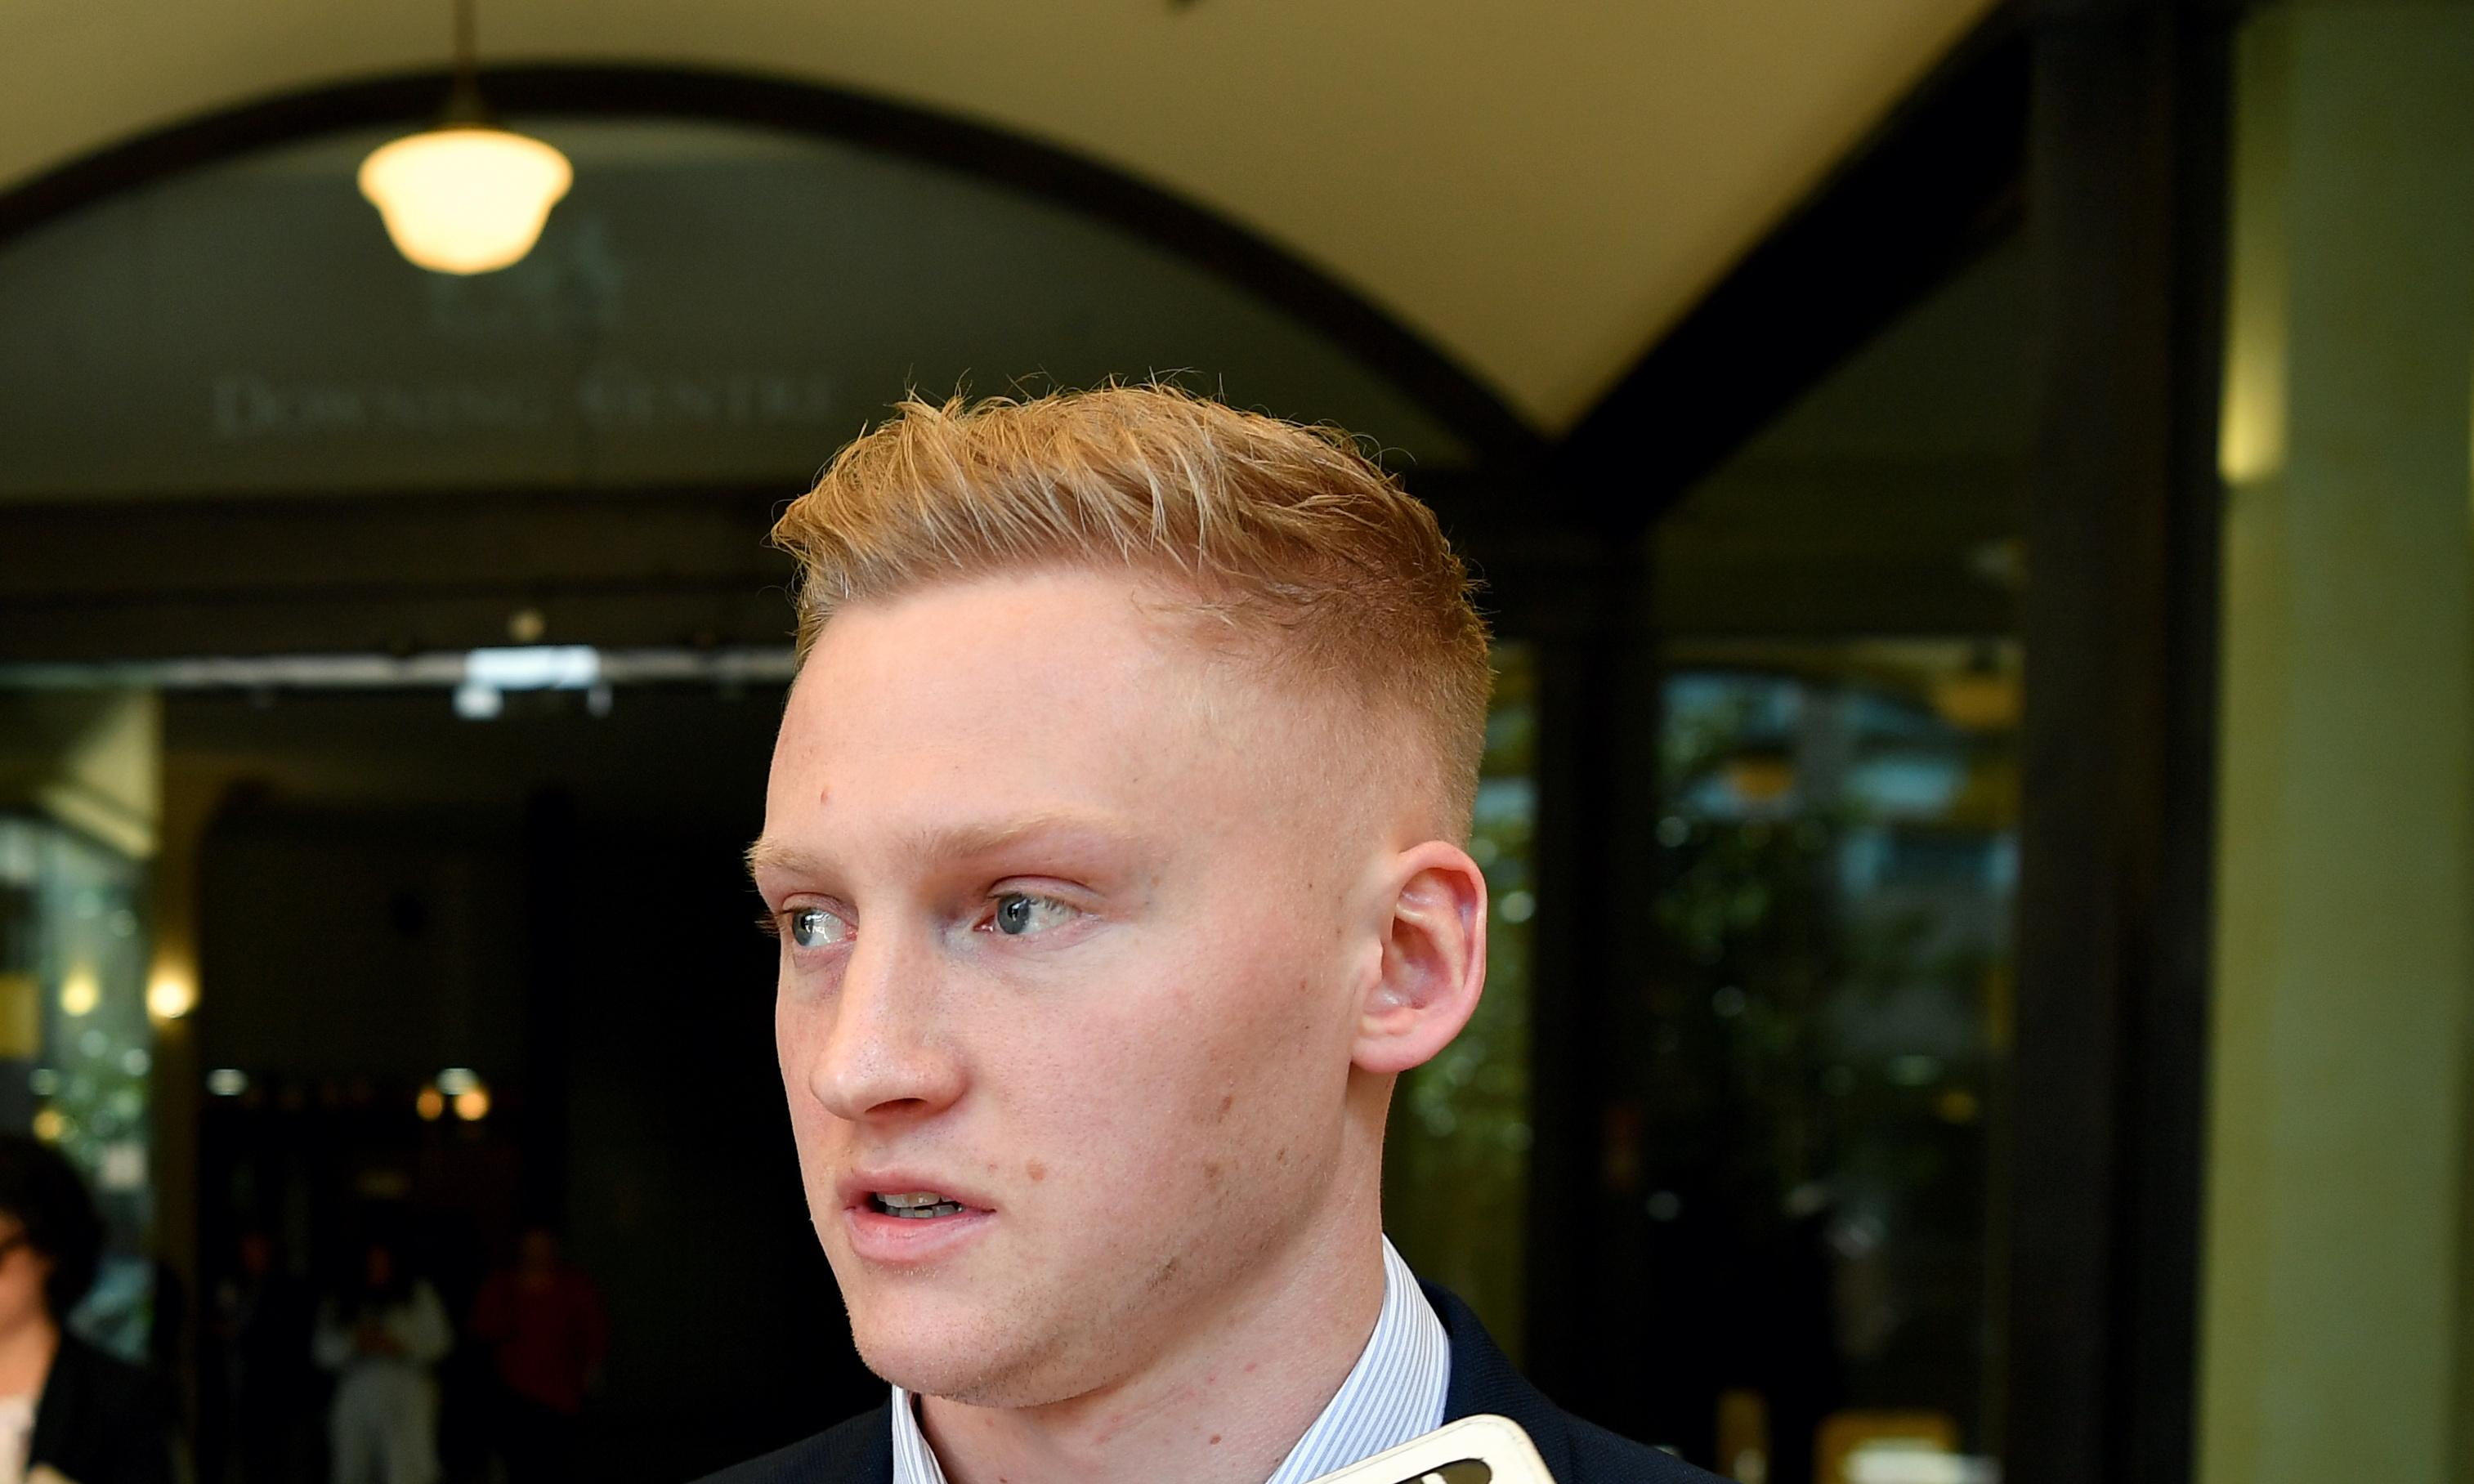 Man cleared of assaulting rugby player awarded $100,000 over Nine's 'coward punch' defamation